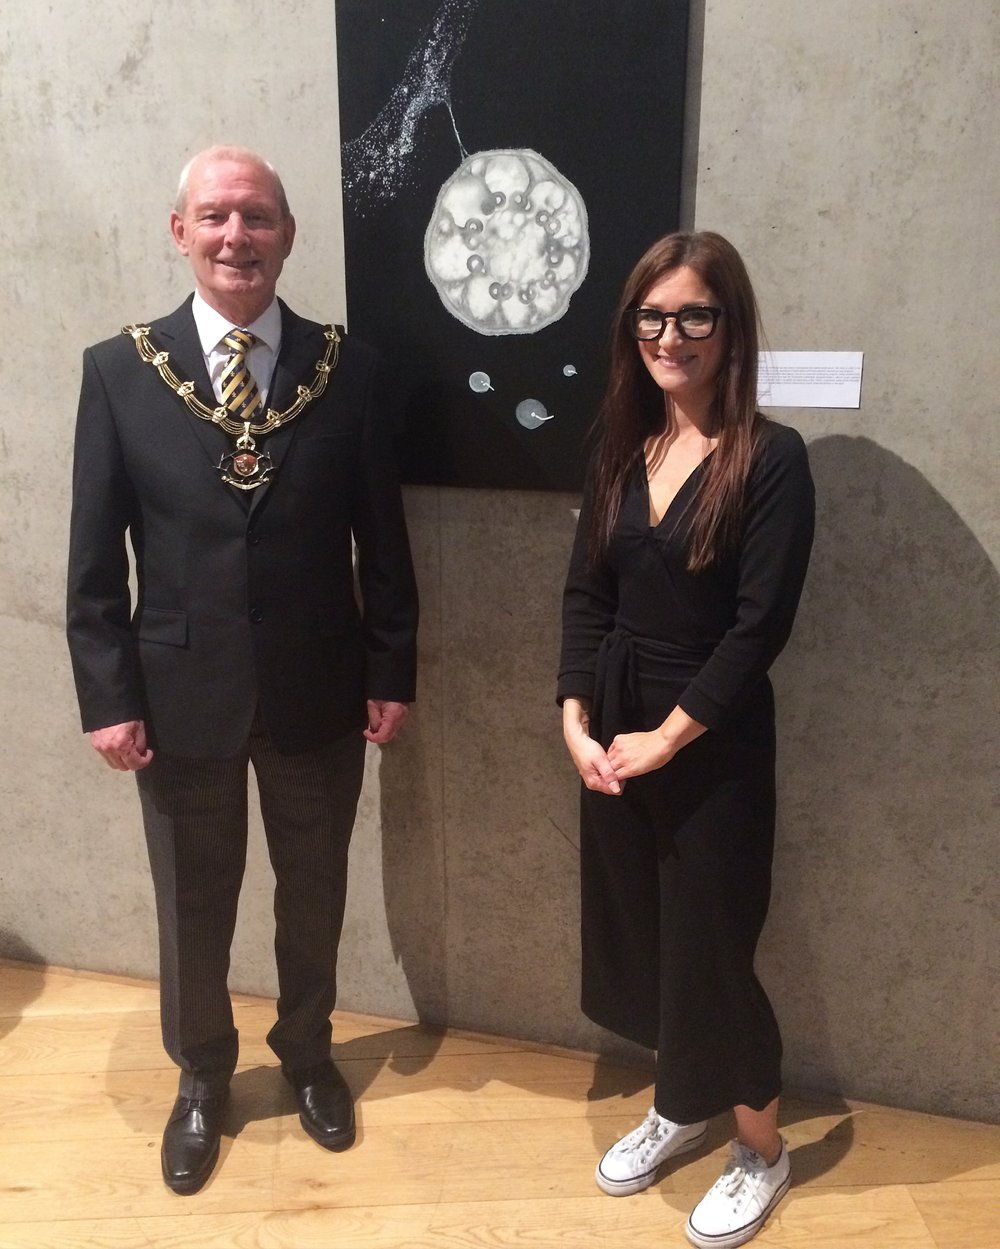 Sheriff of Nottingham Glynn Jenkins and me at Nottingham Contemporary exhibiting 'Cilia Black; Surprise, Surprise' for Pint Of Science Festival 2017